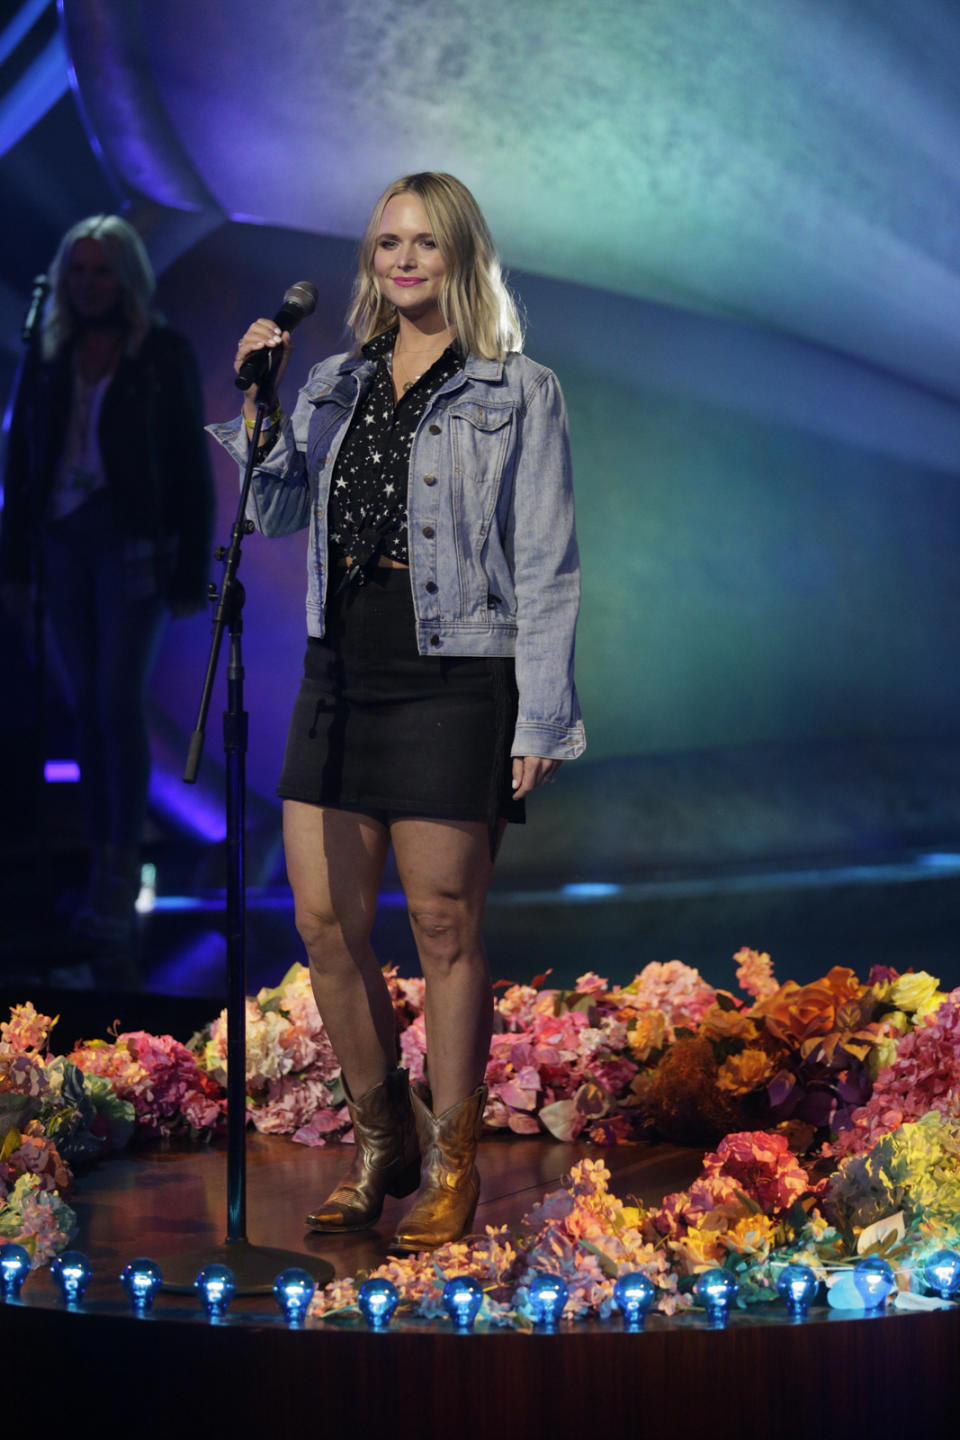 LOS ANGELES - MARCH 9: Miranda Lambert rehearsing for THE 63rd ANNUAL GRAMMY® AWARDS, broadcast live from the STAPLES Center in Los Angeles, Sunday, March 14, 2021 (8:00-11:30 PM, live ET/5:00-8:30 PM, live PT) on the CBS Television Network and Paramount+. (Photo by Francis Specker/CBS via Getty Images)